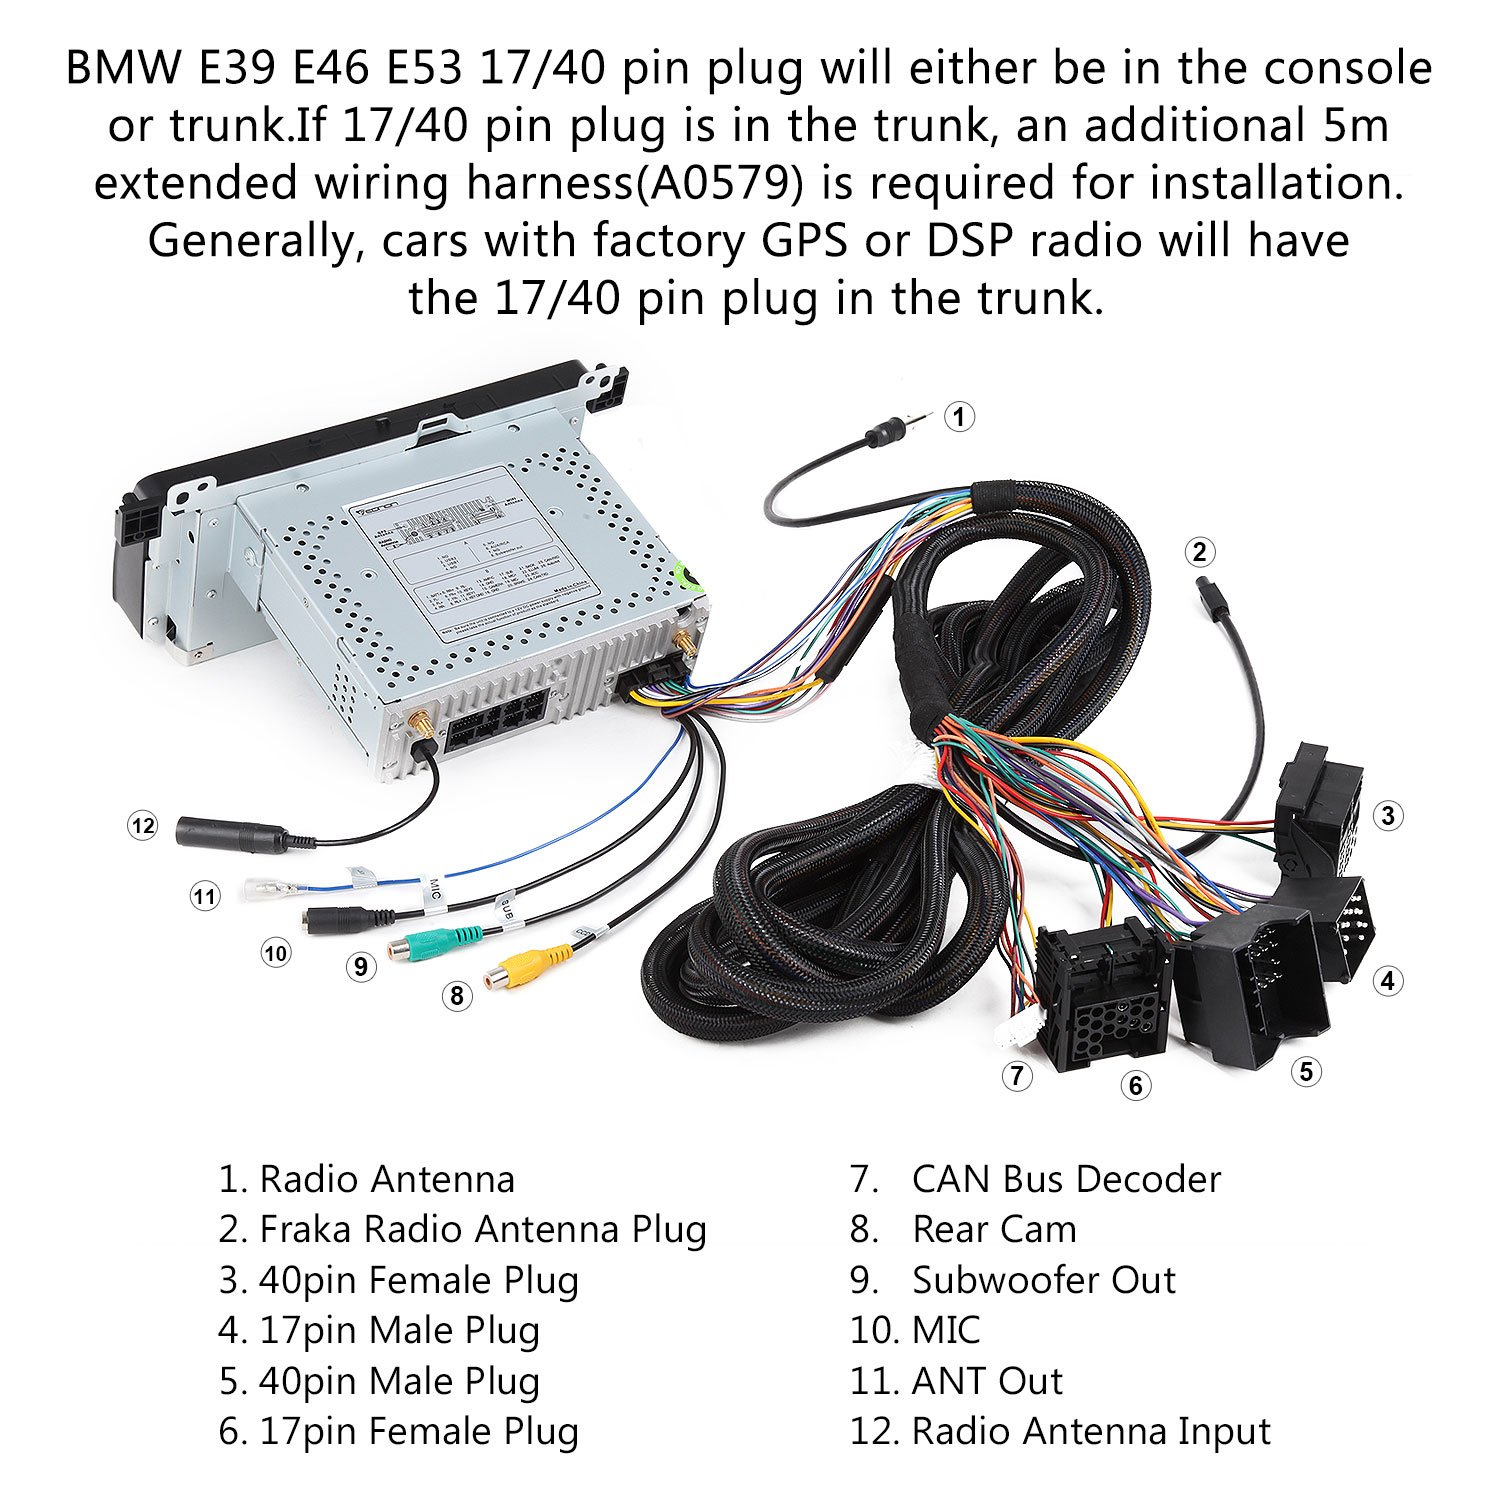 Bmw E46 Trunk Wiring Harness Amazon from images-na.ssl-images-amazon.com